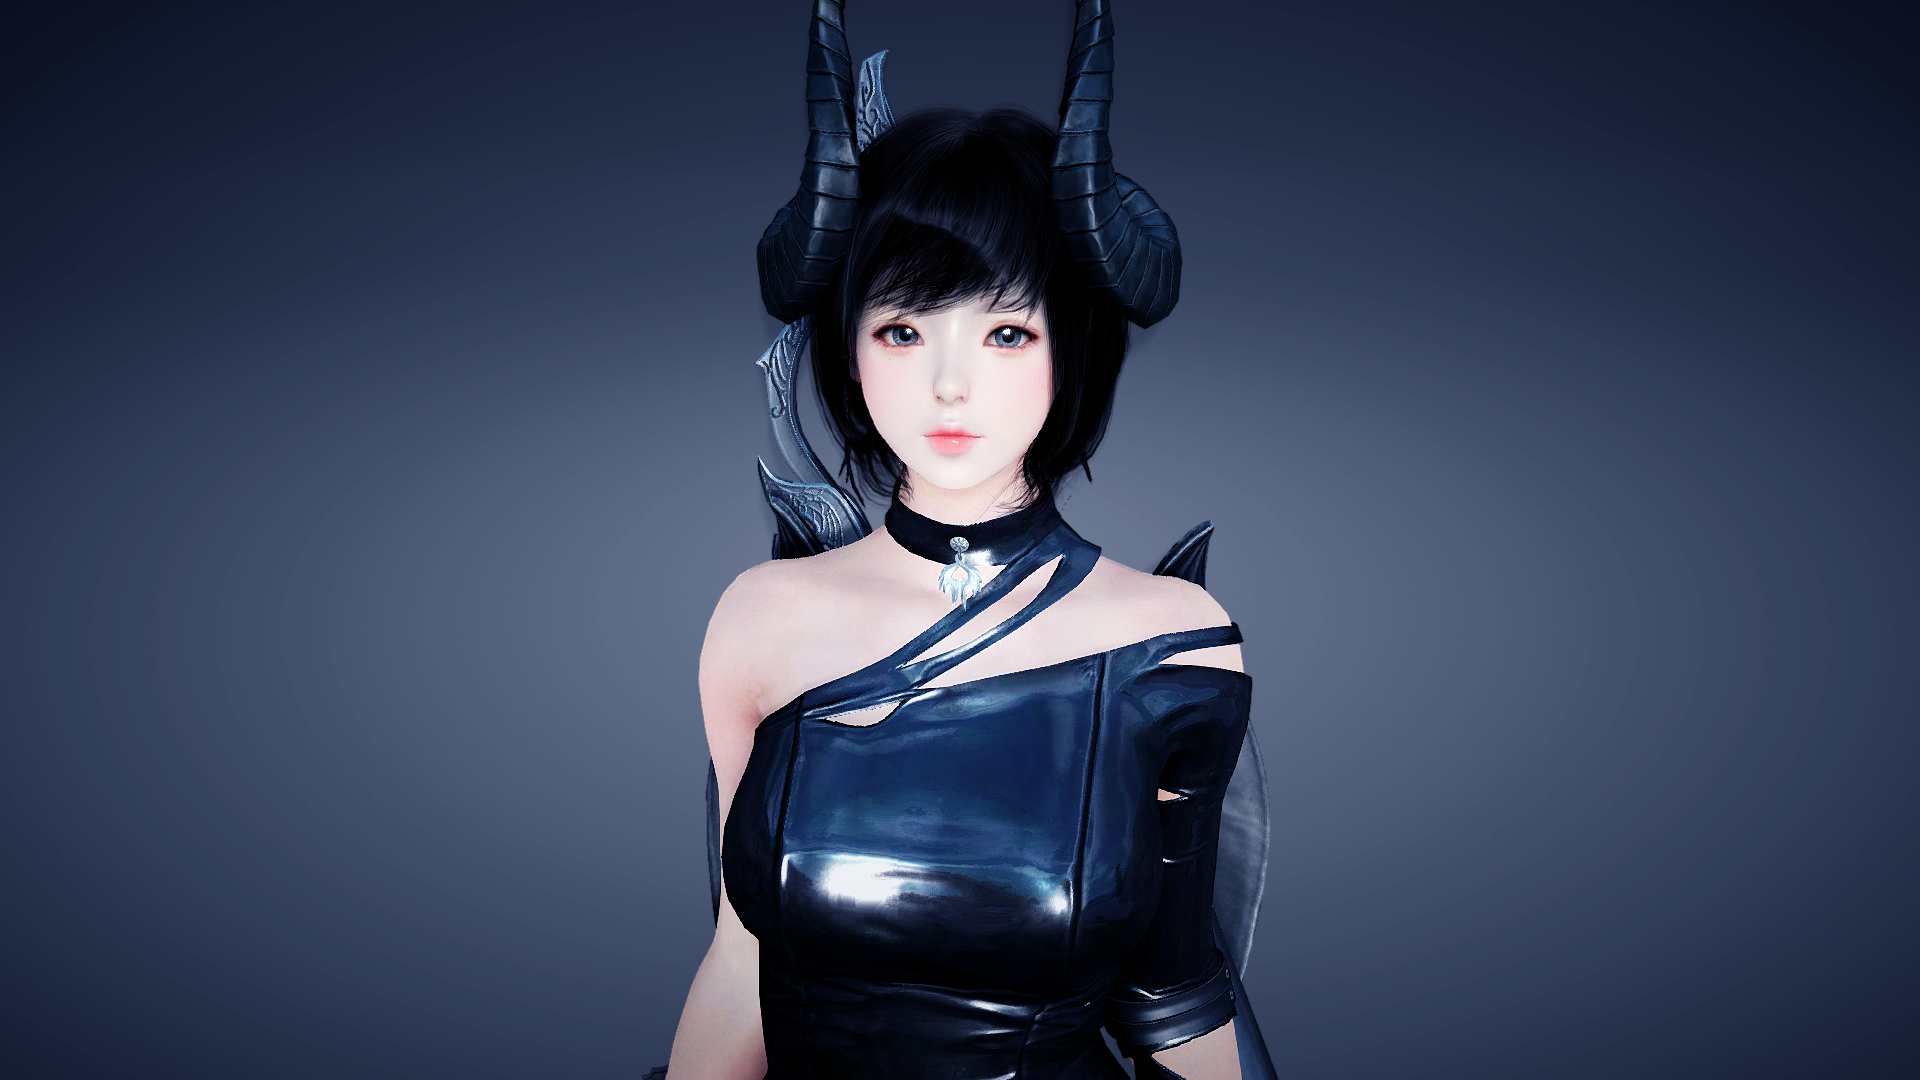 black desert online guide for maehwa awakening and skills inven